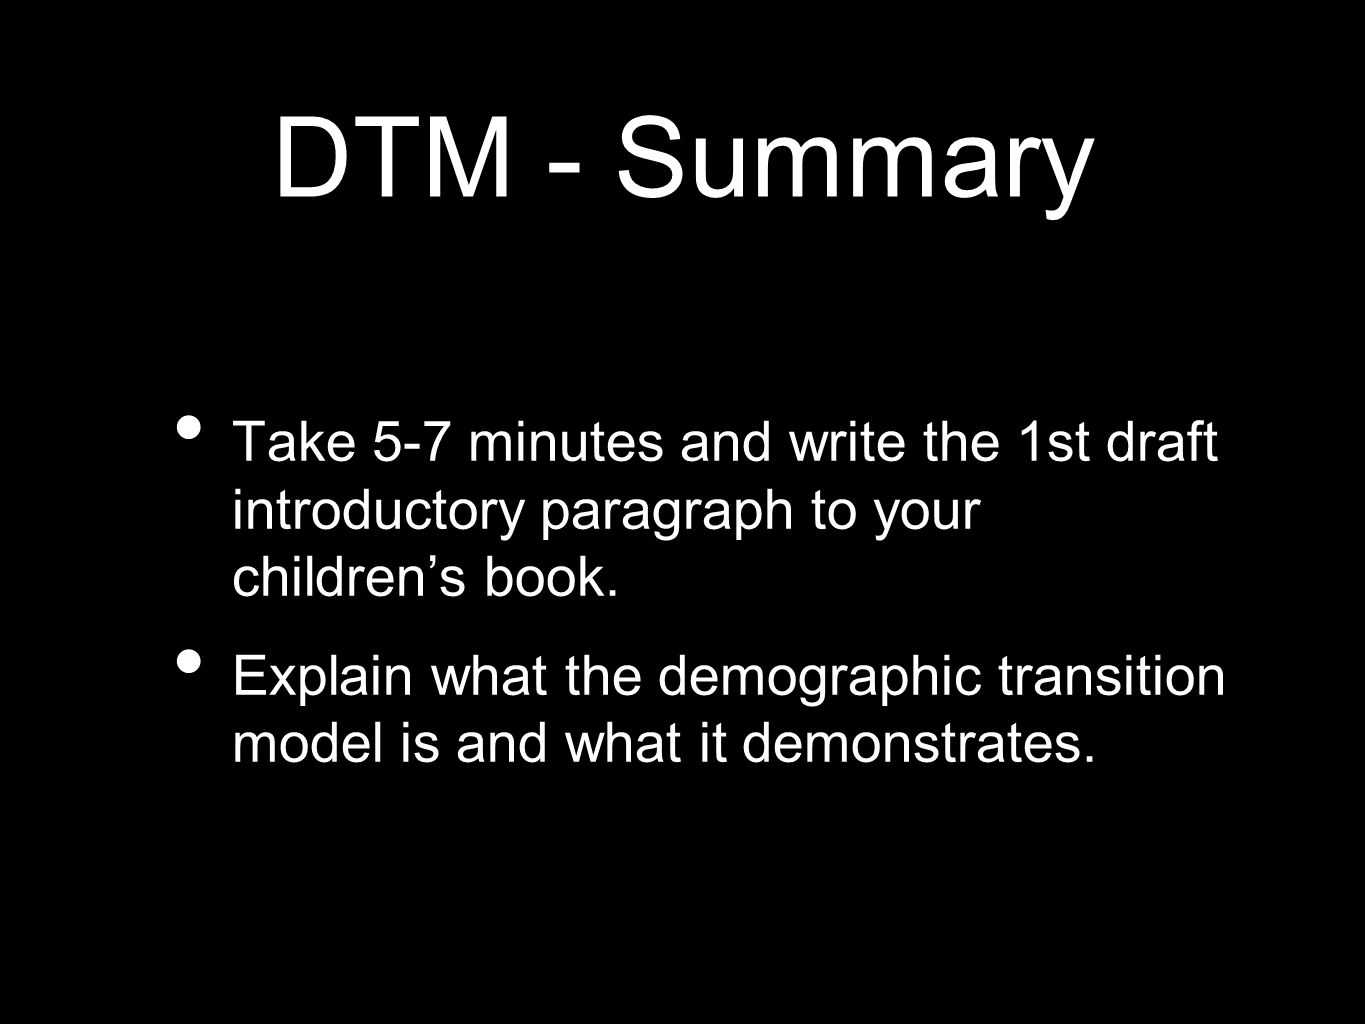 DTM - SummaryTake 5-7 minutes and write the 1st draft introductory paragraph to your children's book.